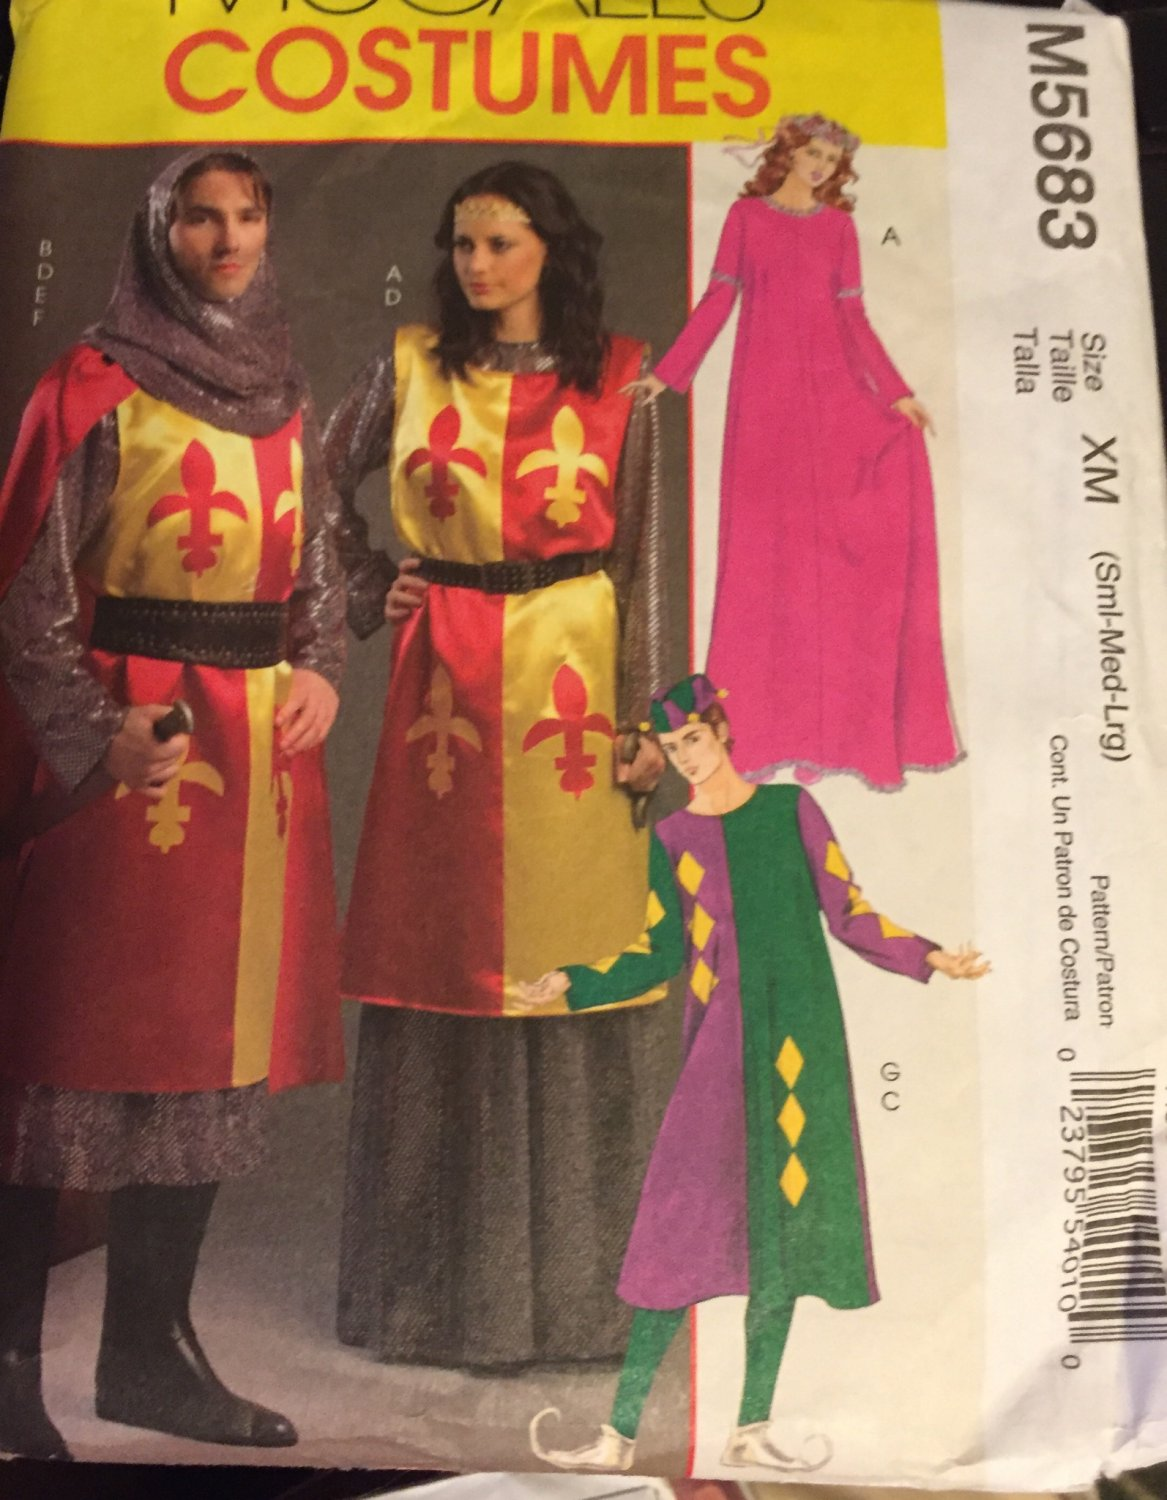 McCalls 5683 Costume Pattern Adult Renaissance or Medieval Dress in Variations  Size XM sml Med Lg